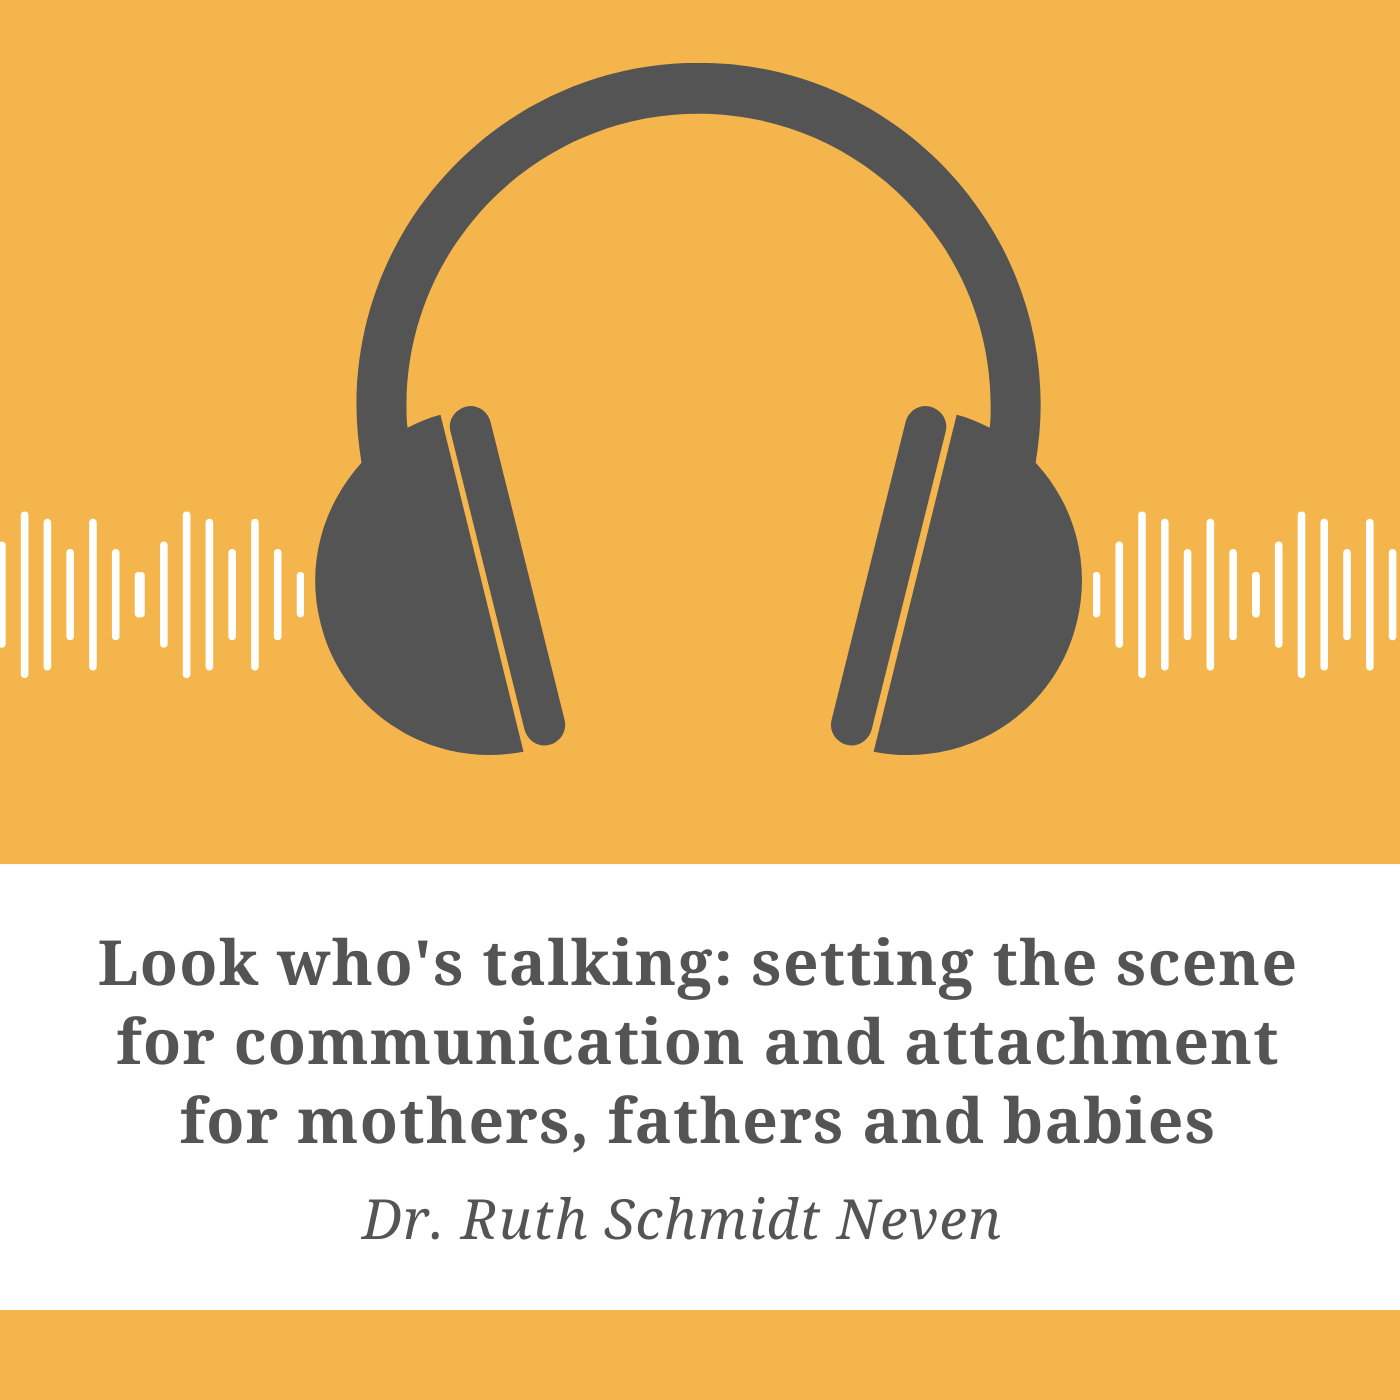 Look Who's Talking: Setting the Scene for Communication and Attachment